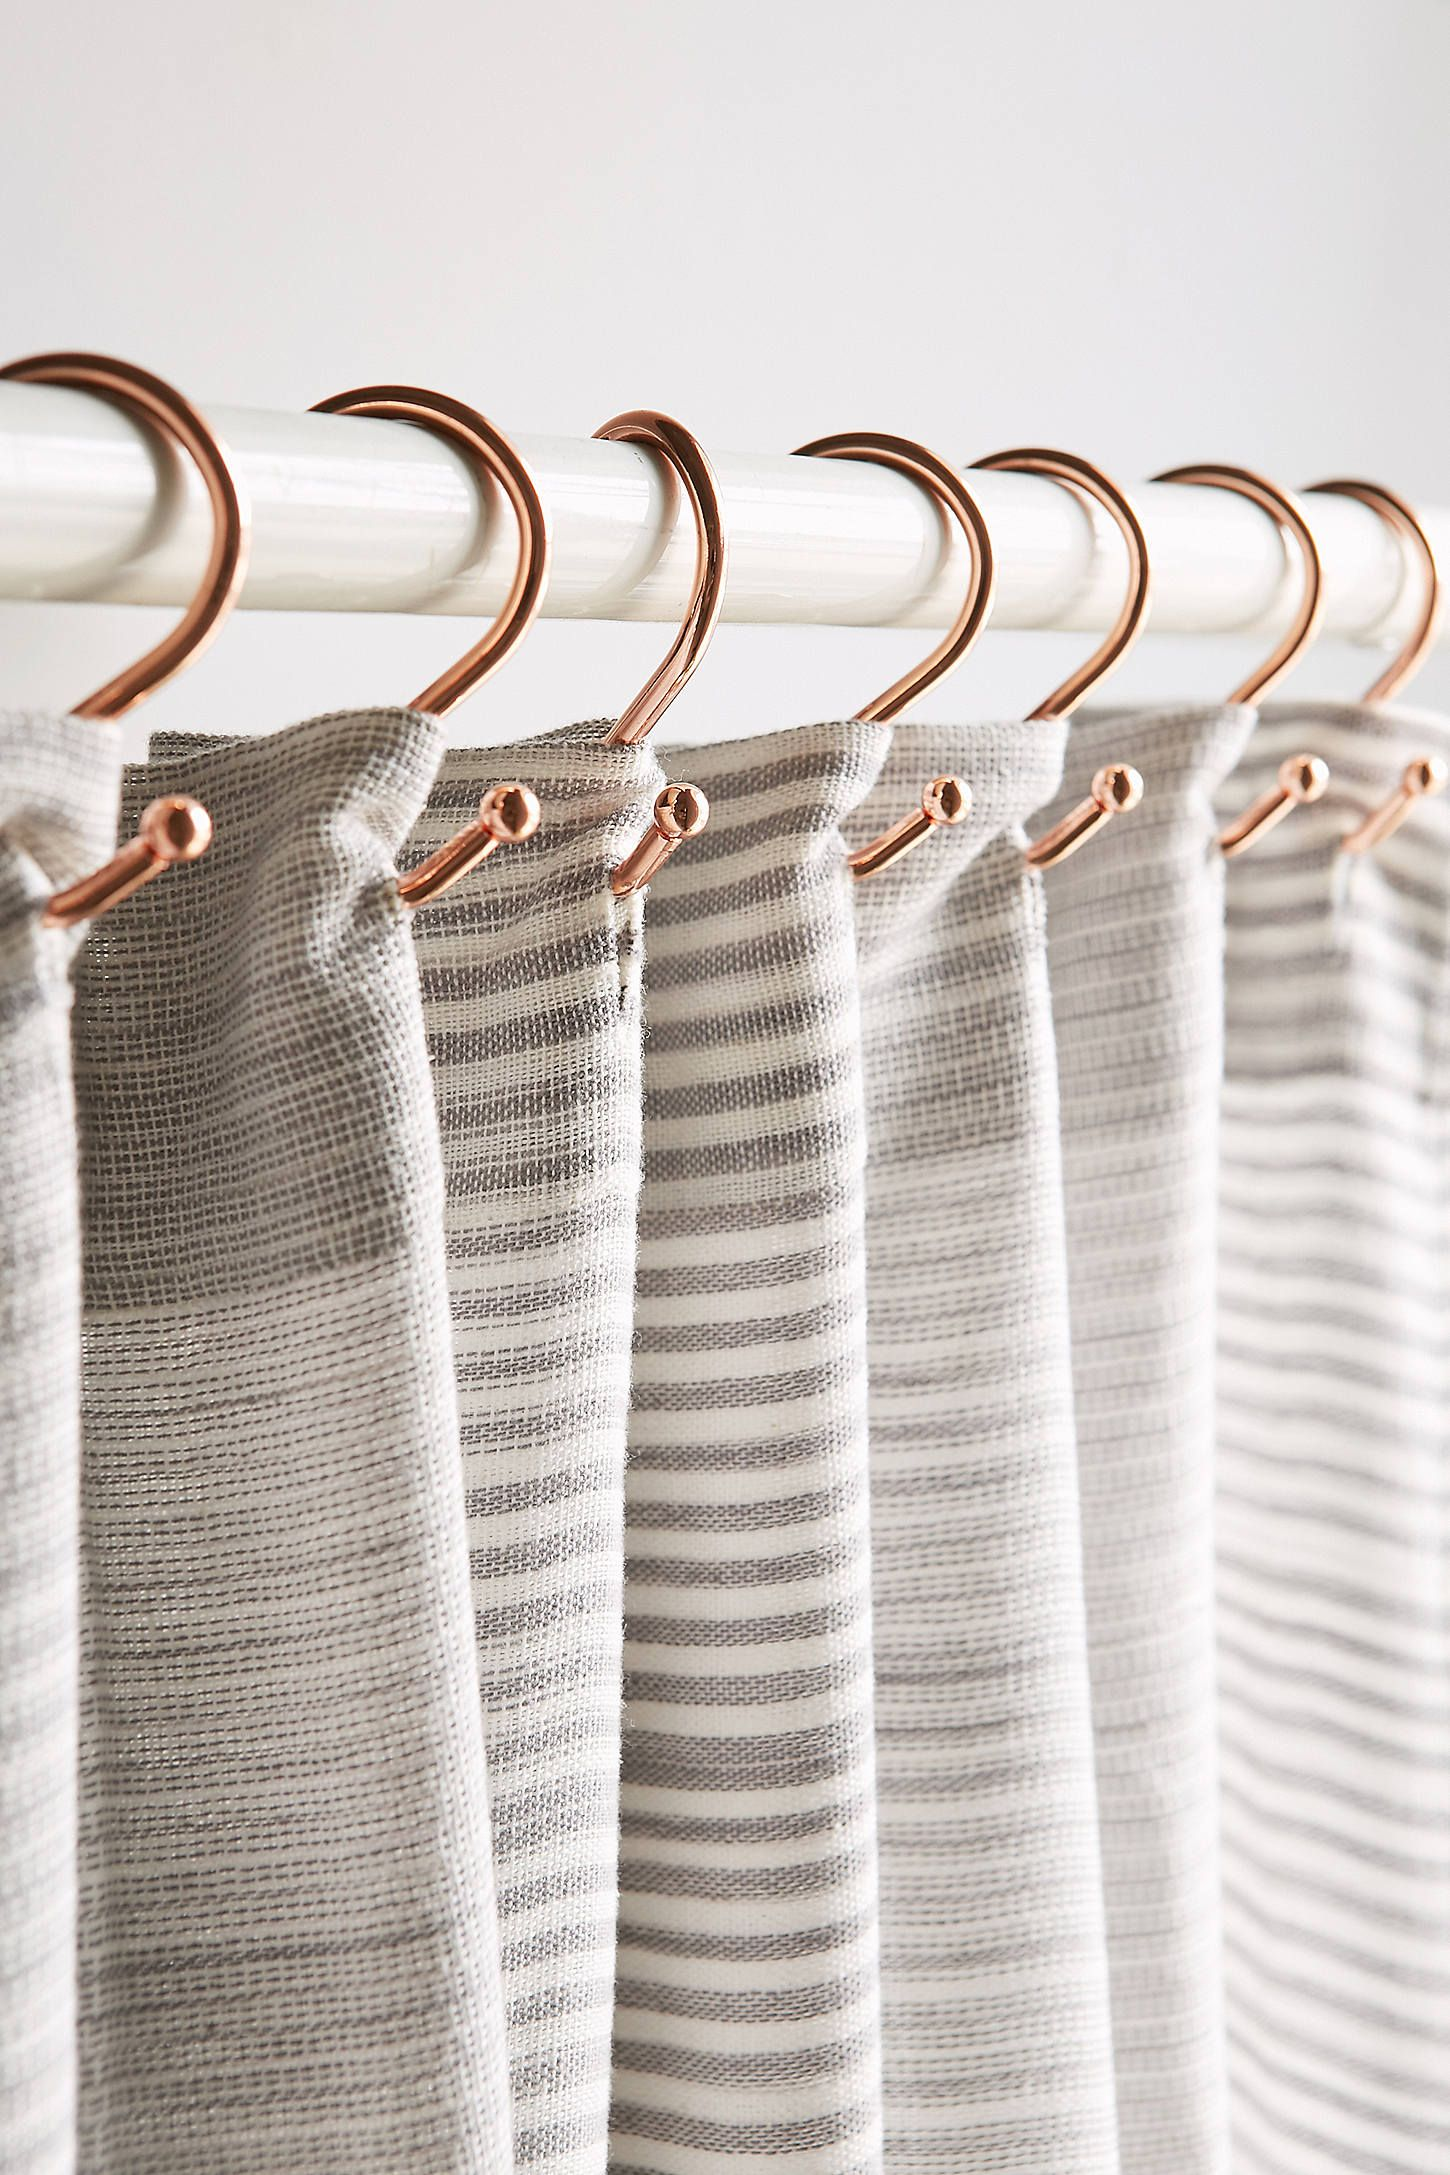 Shop Copper Shower Curtain Hooks Set At Urban Outfitters Today We Carry All The Latest Styles Colors And Brands For You To Choose From Right Here